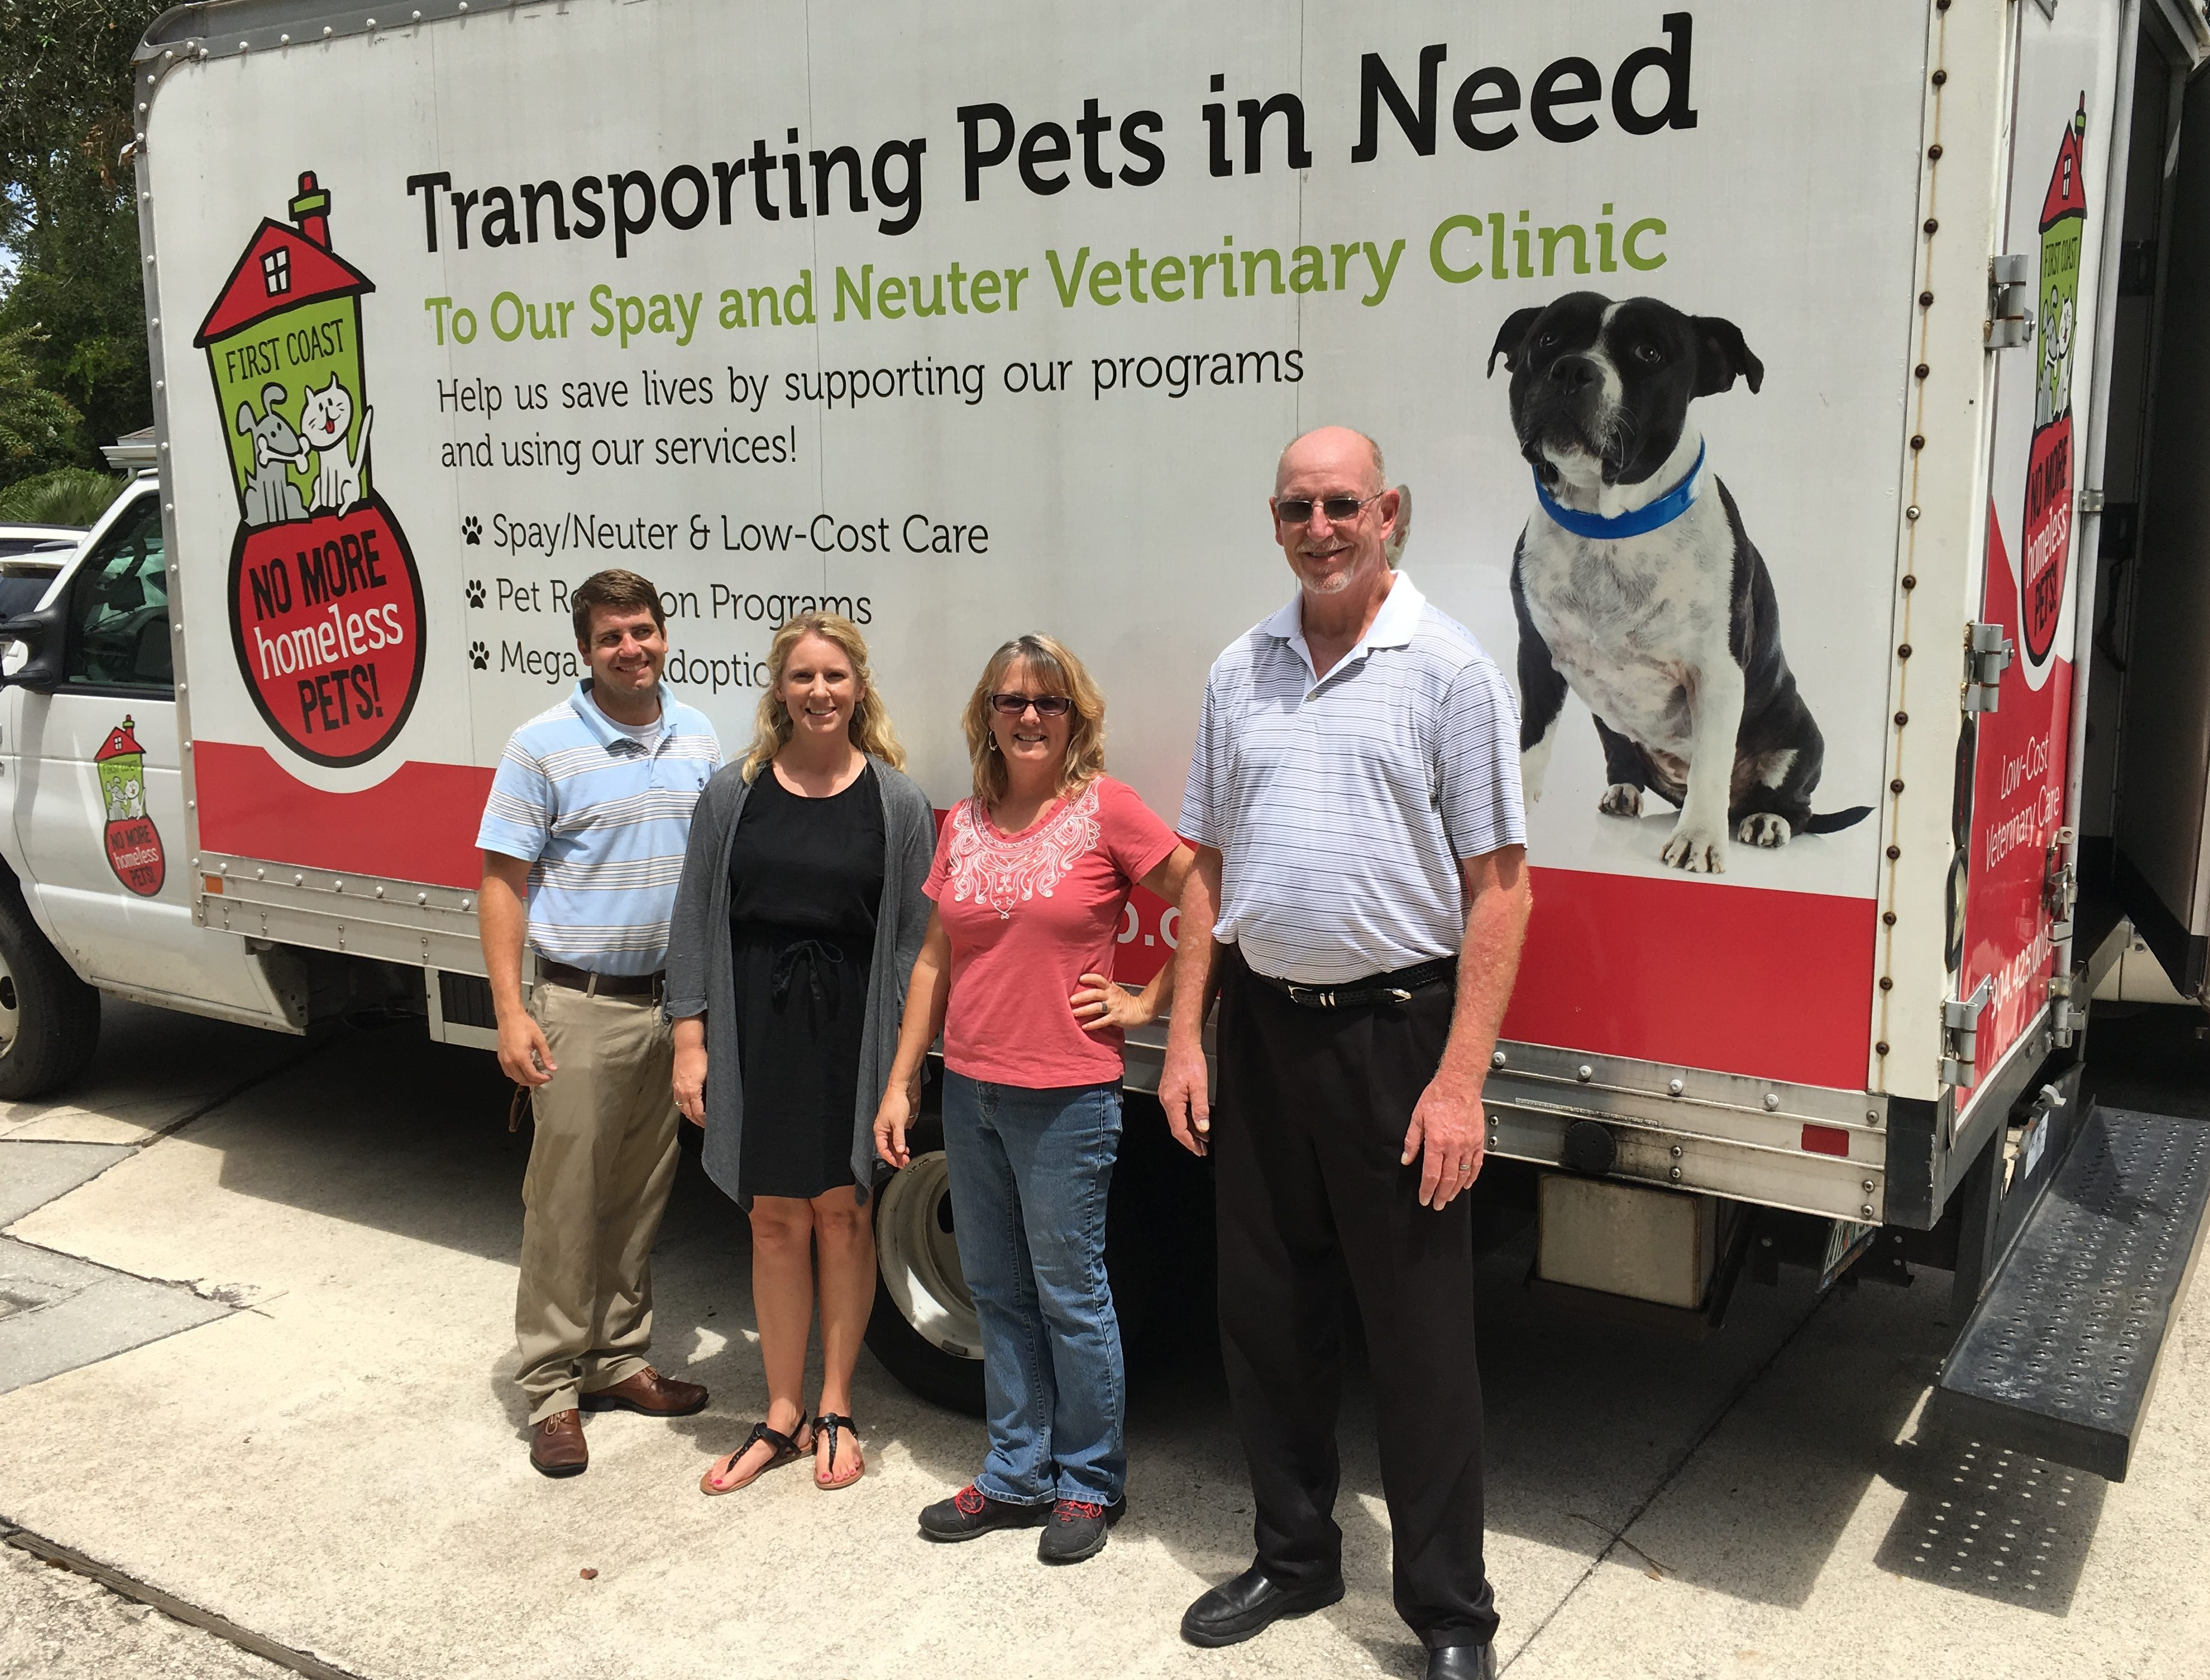 Summer tradition benefits First Coast No More Homeless Pets